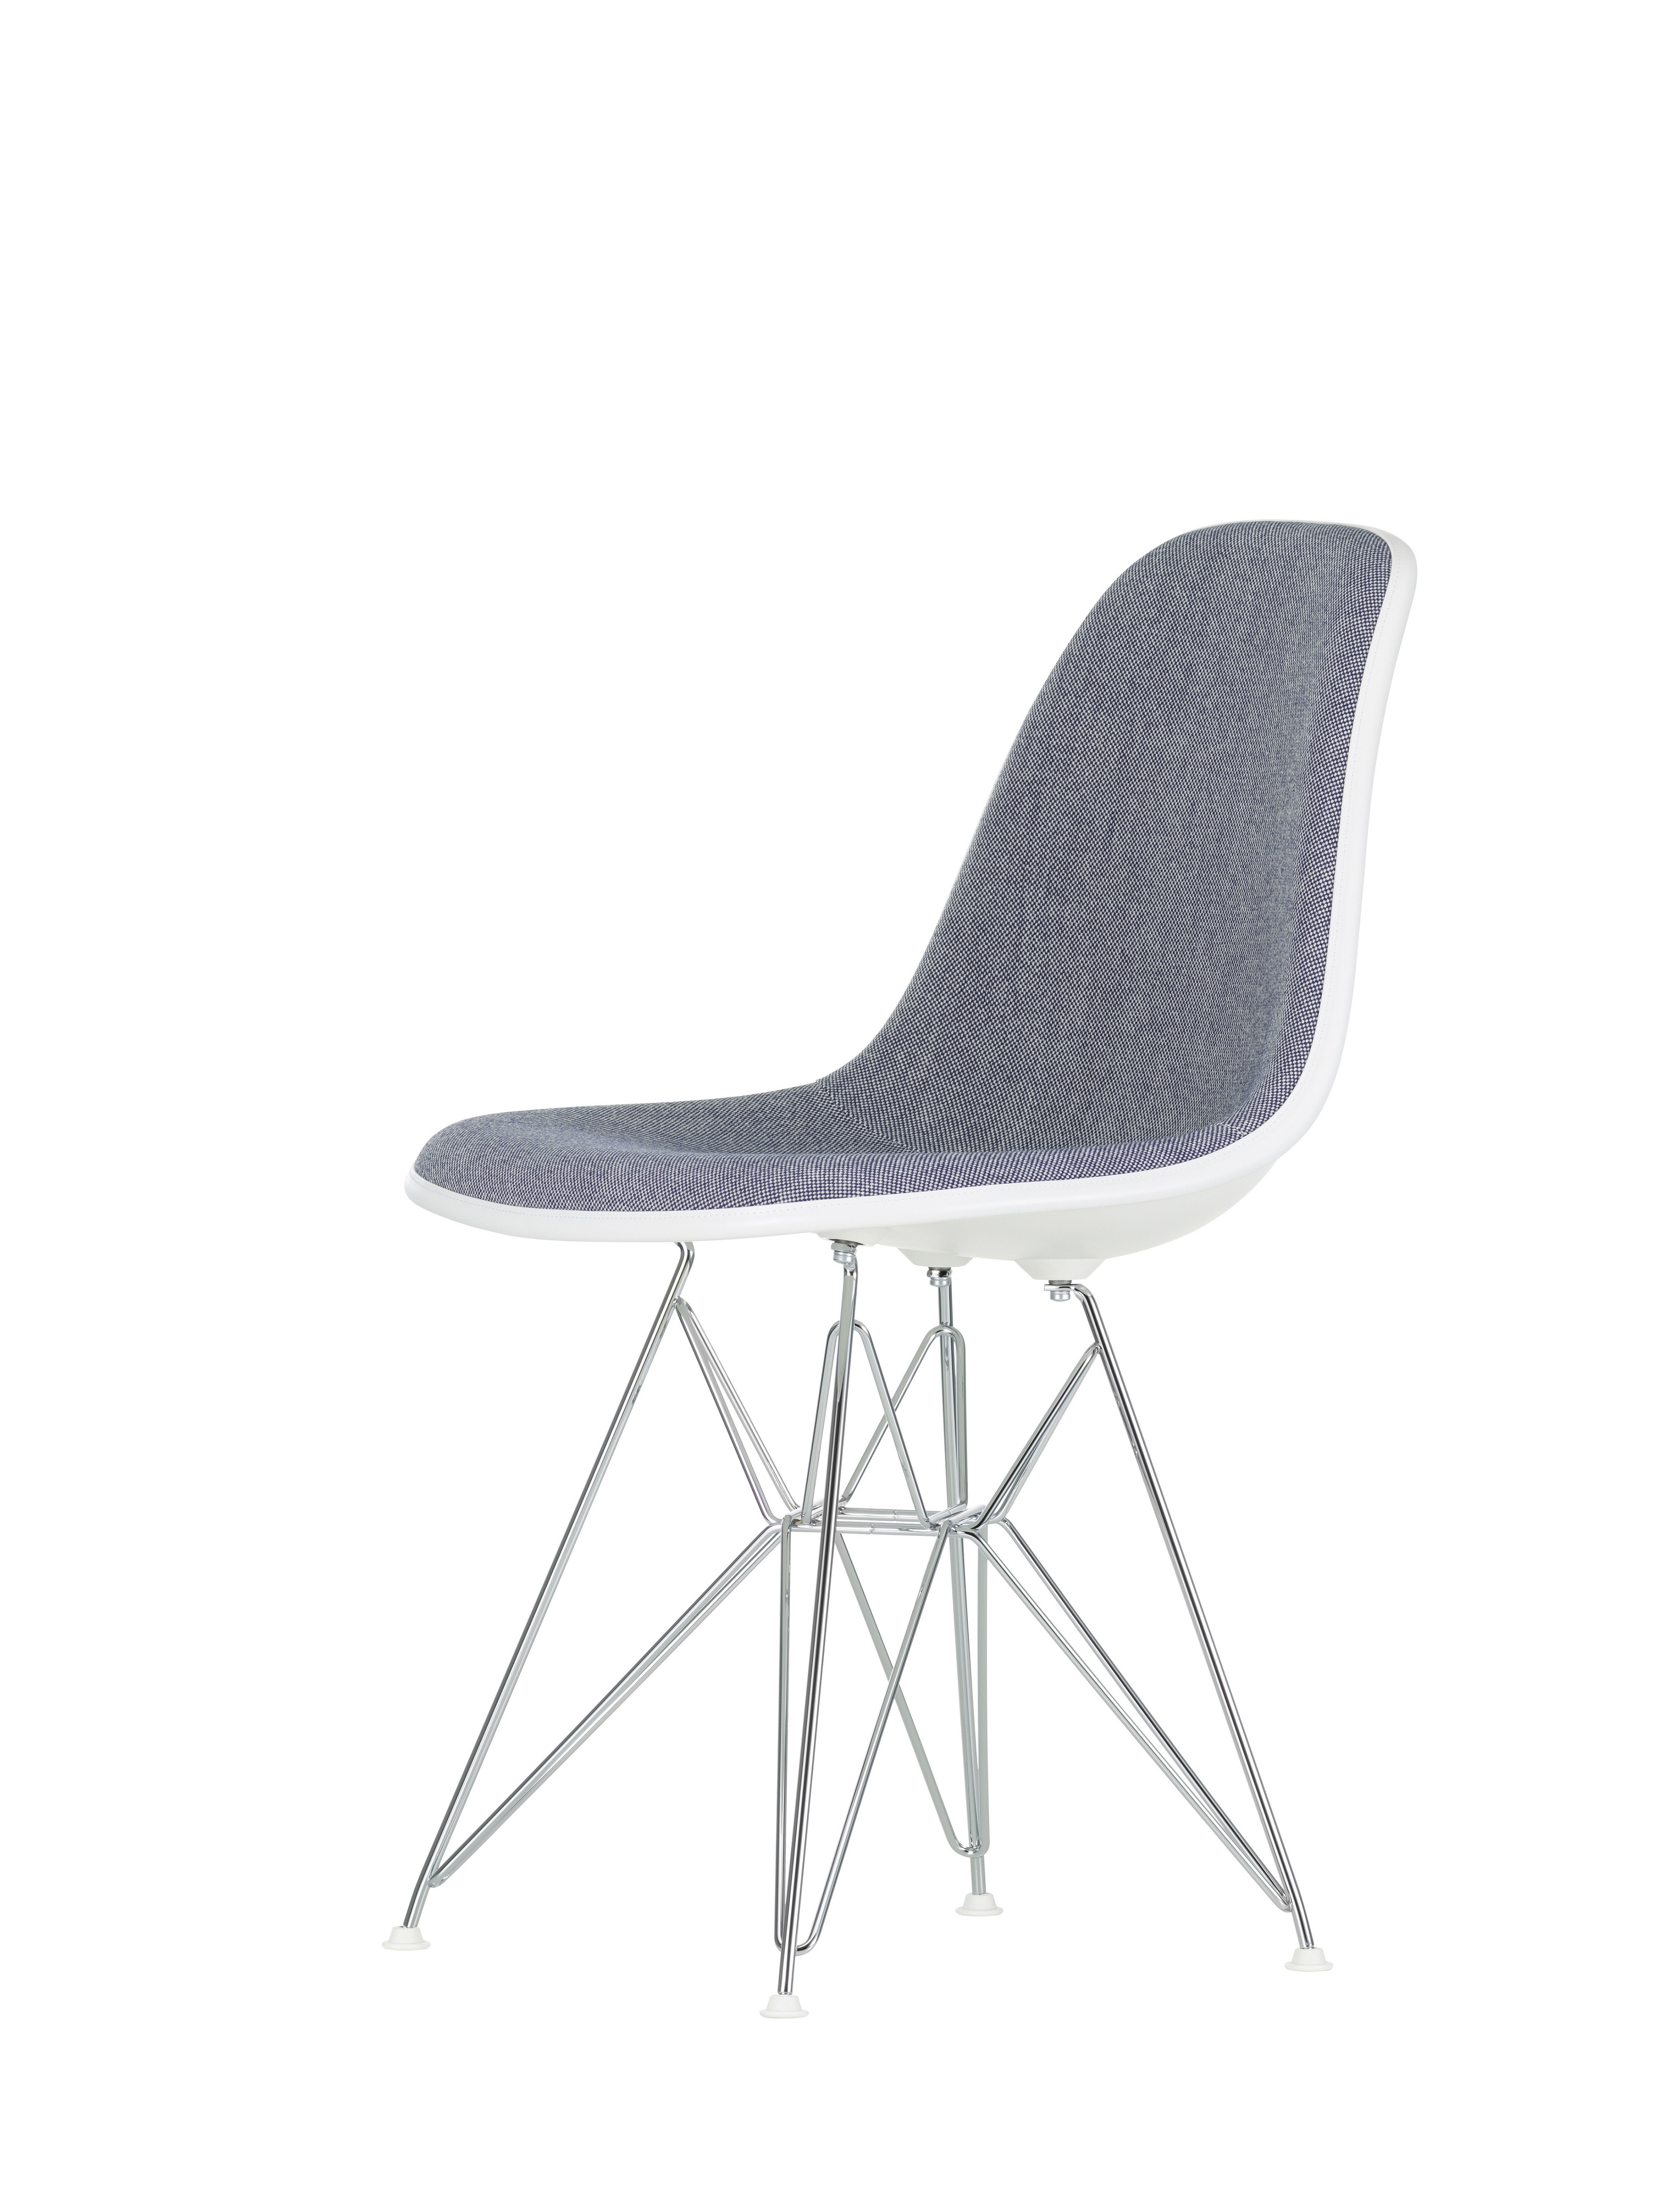 vitra stuhl eames plastic sidechair dsr mit polsterung. Black Bedroom Furniture Sets. Home Design Ideas